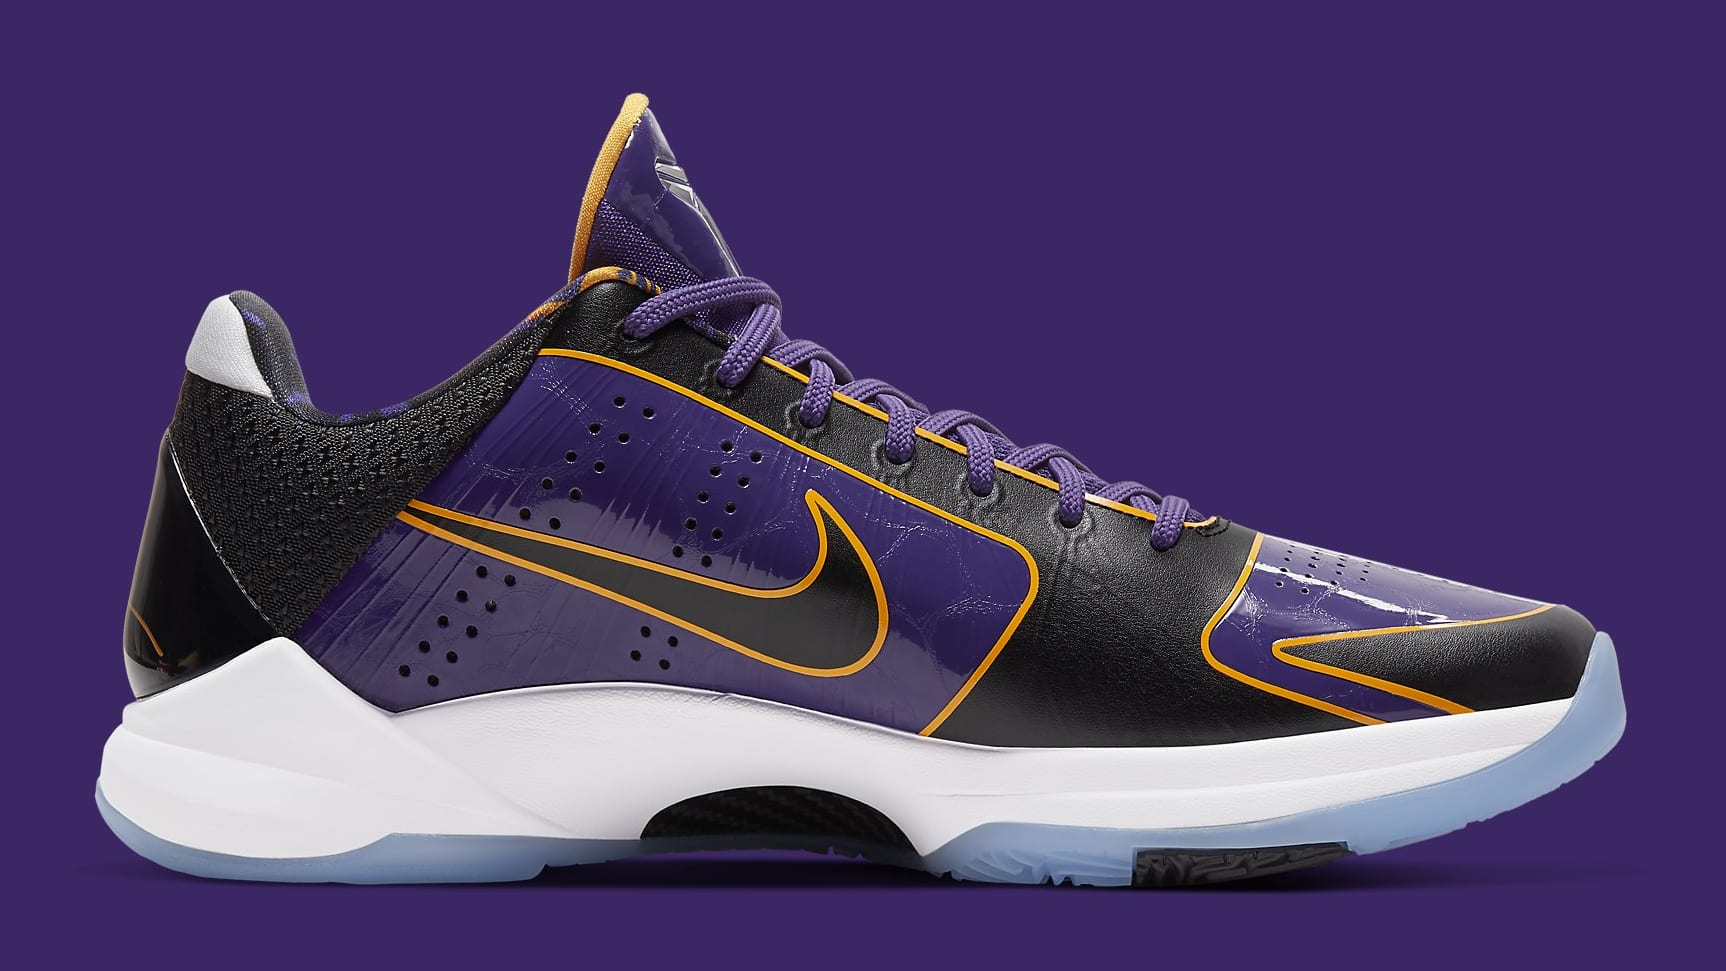 Nike Kobe 5 Protro Lakers Release Date CD4991-500 Medial